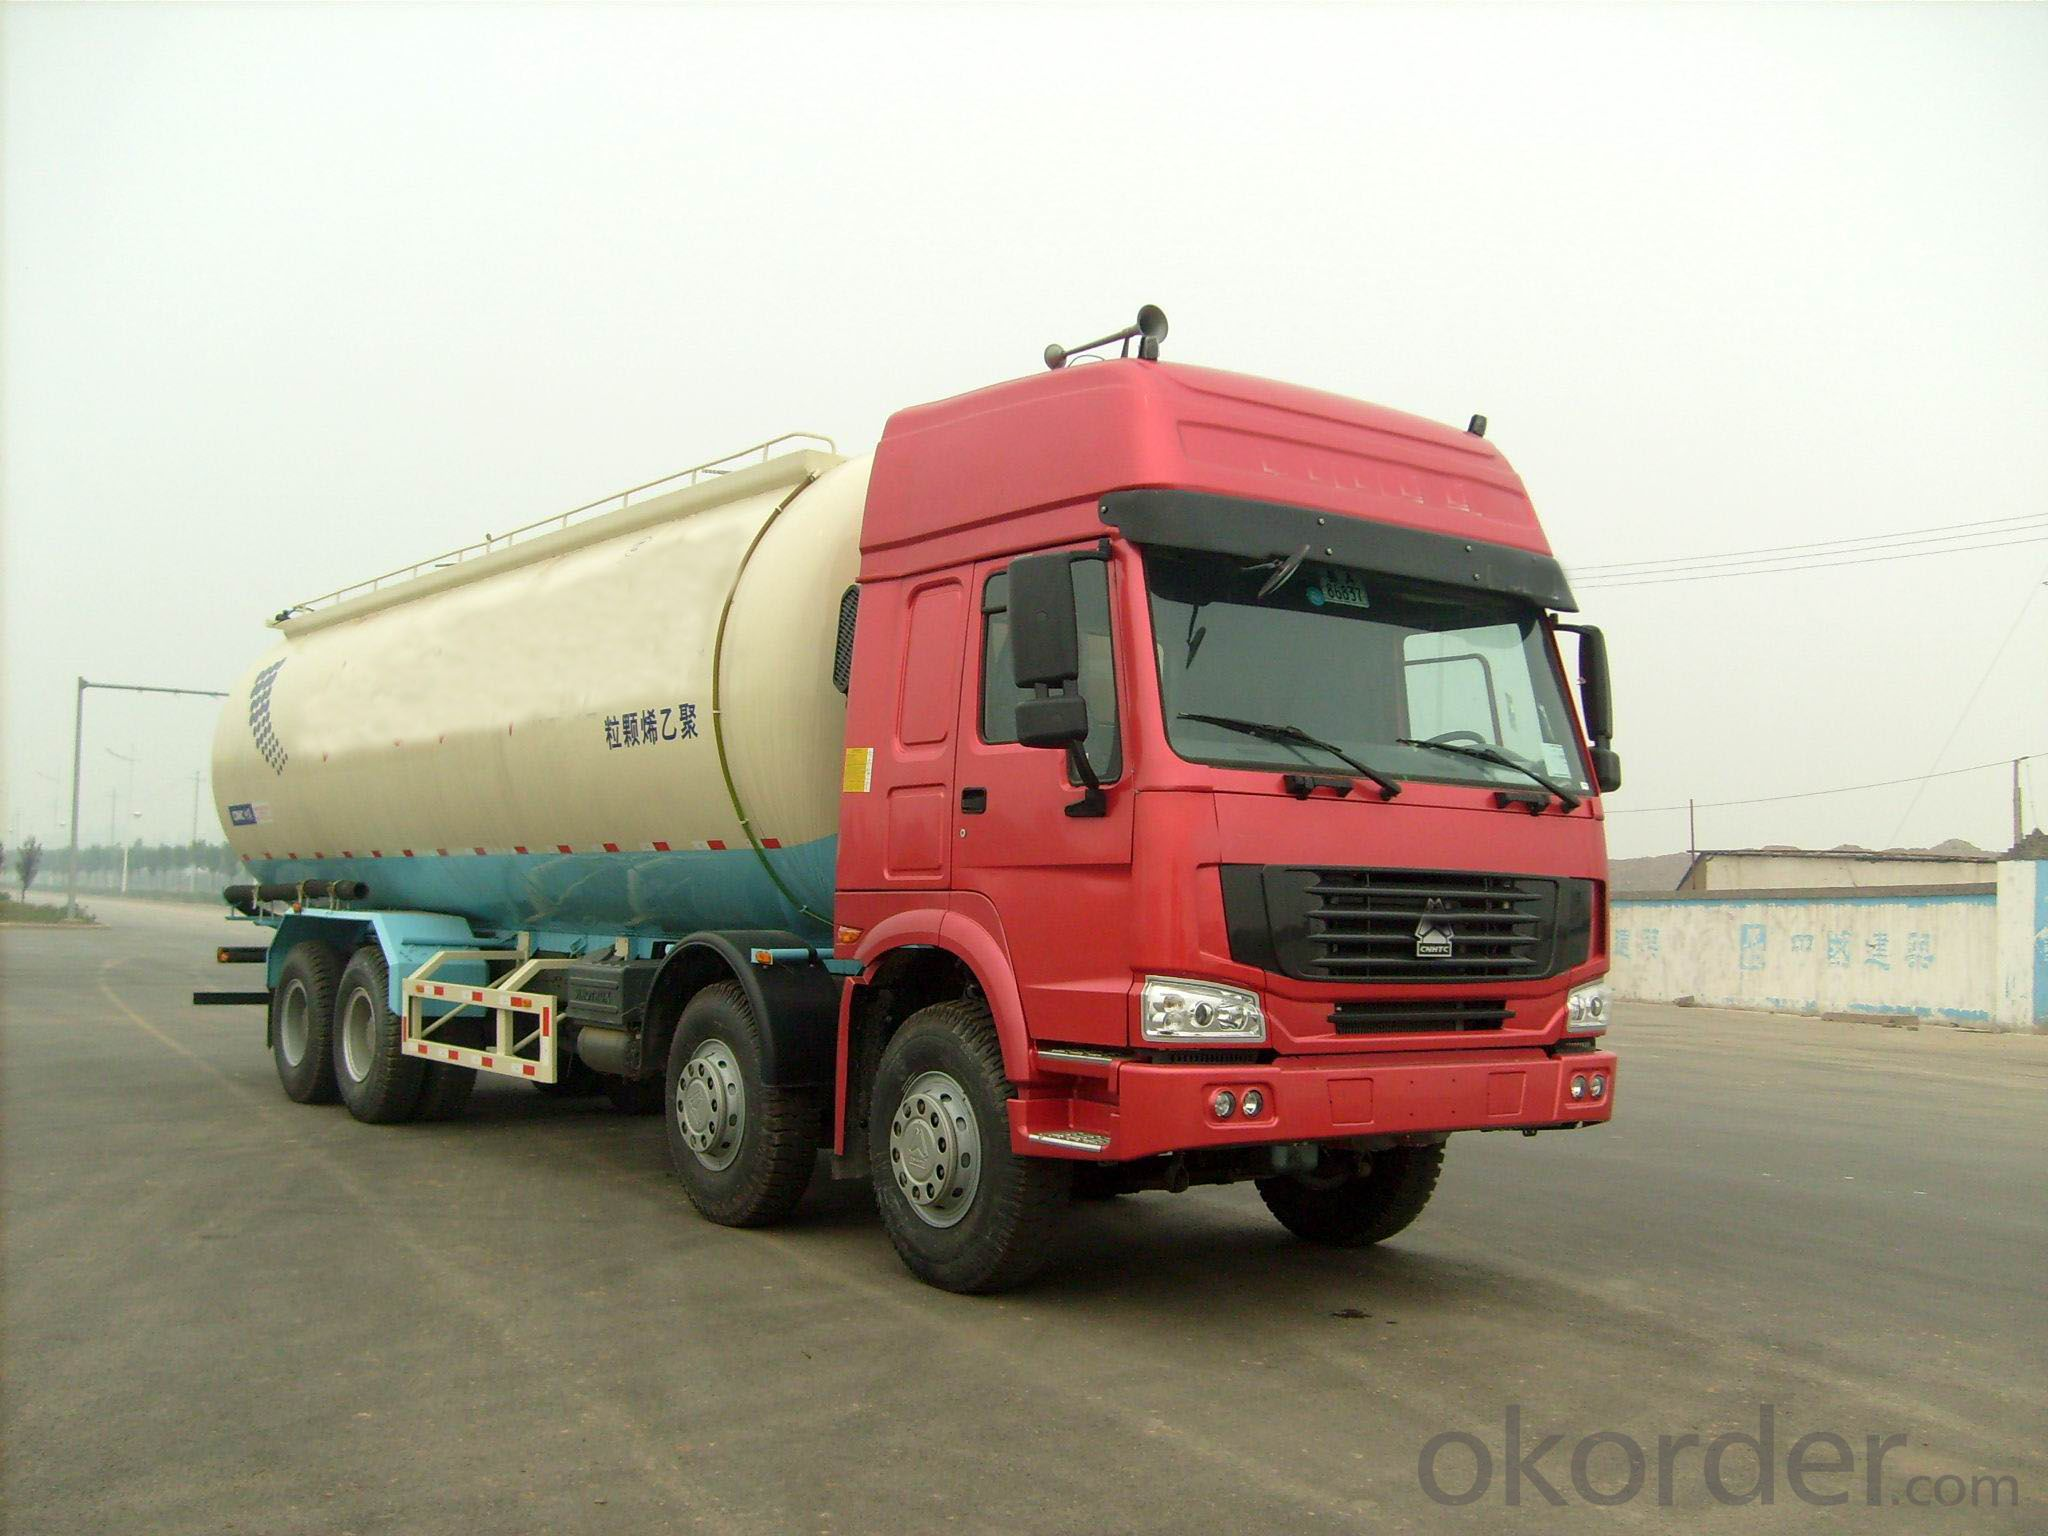 The Bulk Cement Truck with 40 Cubic Meters